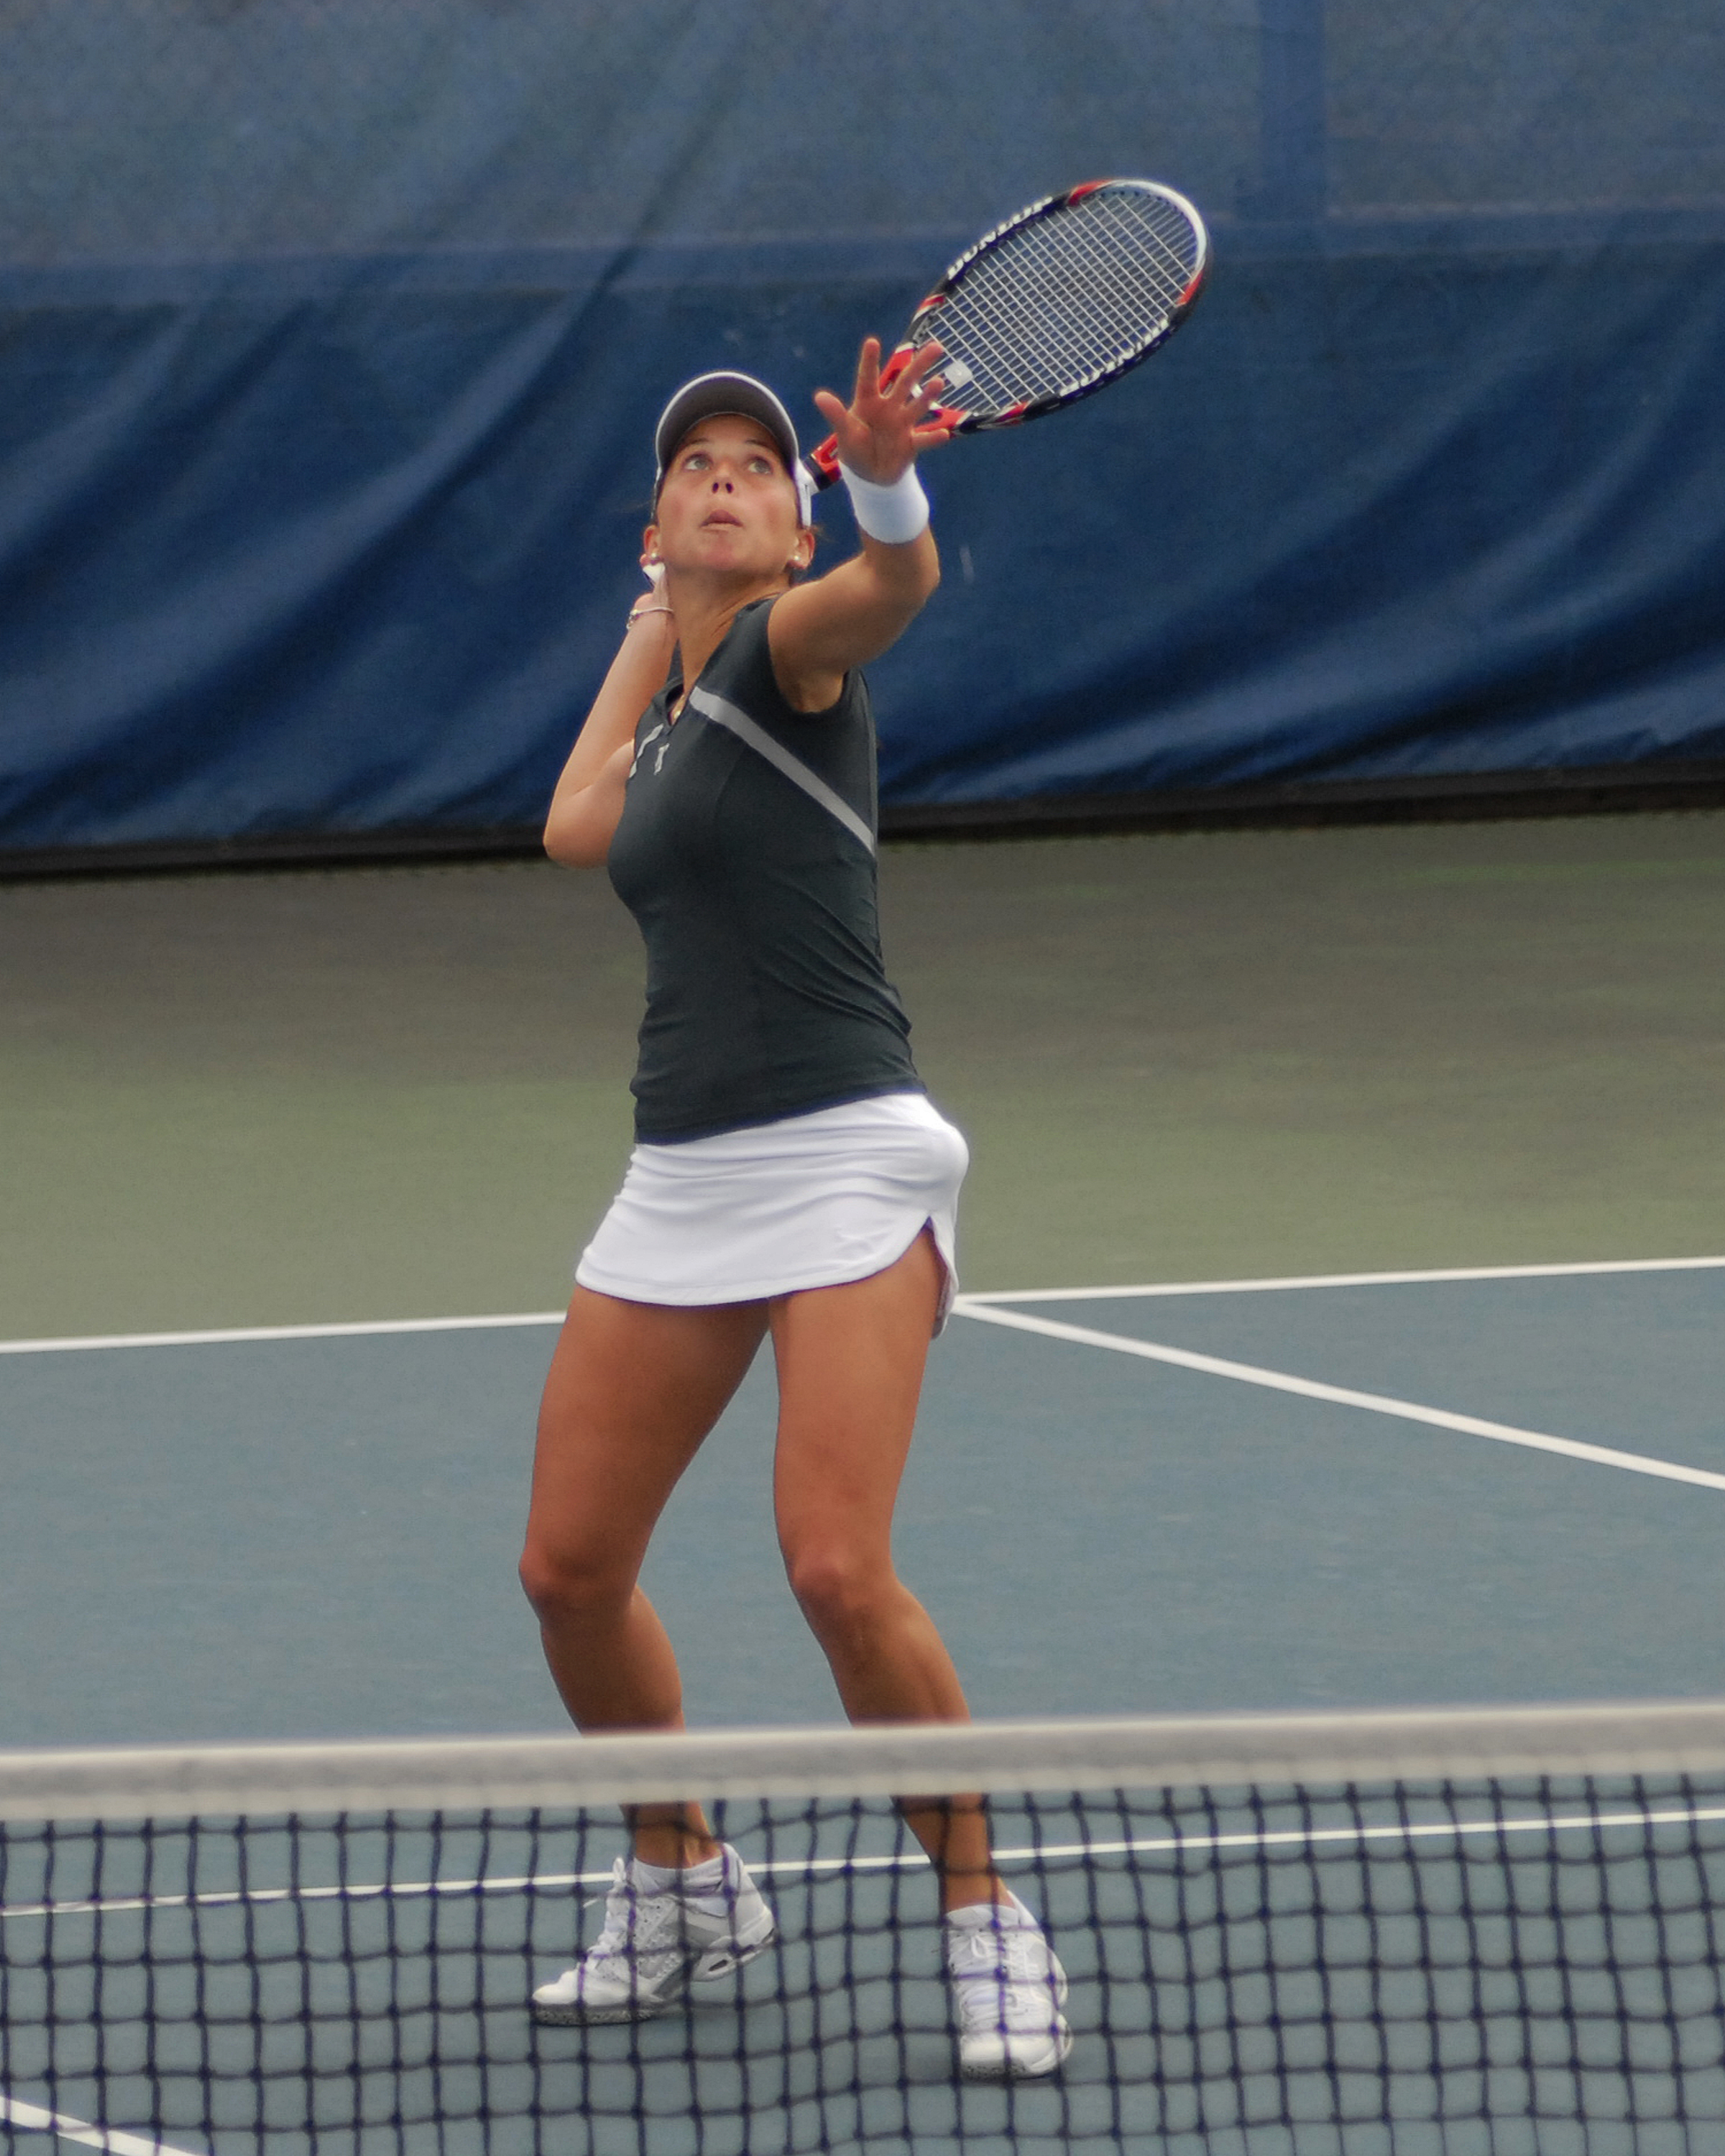 Rebekka Hänle advanced in qualifying at the ITA All-American, rebounding to win a three-set match Tuesday.